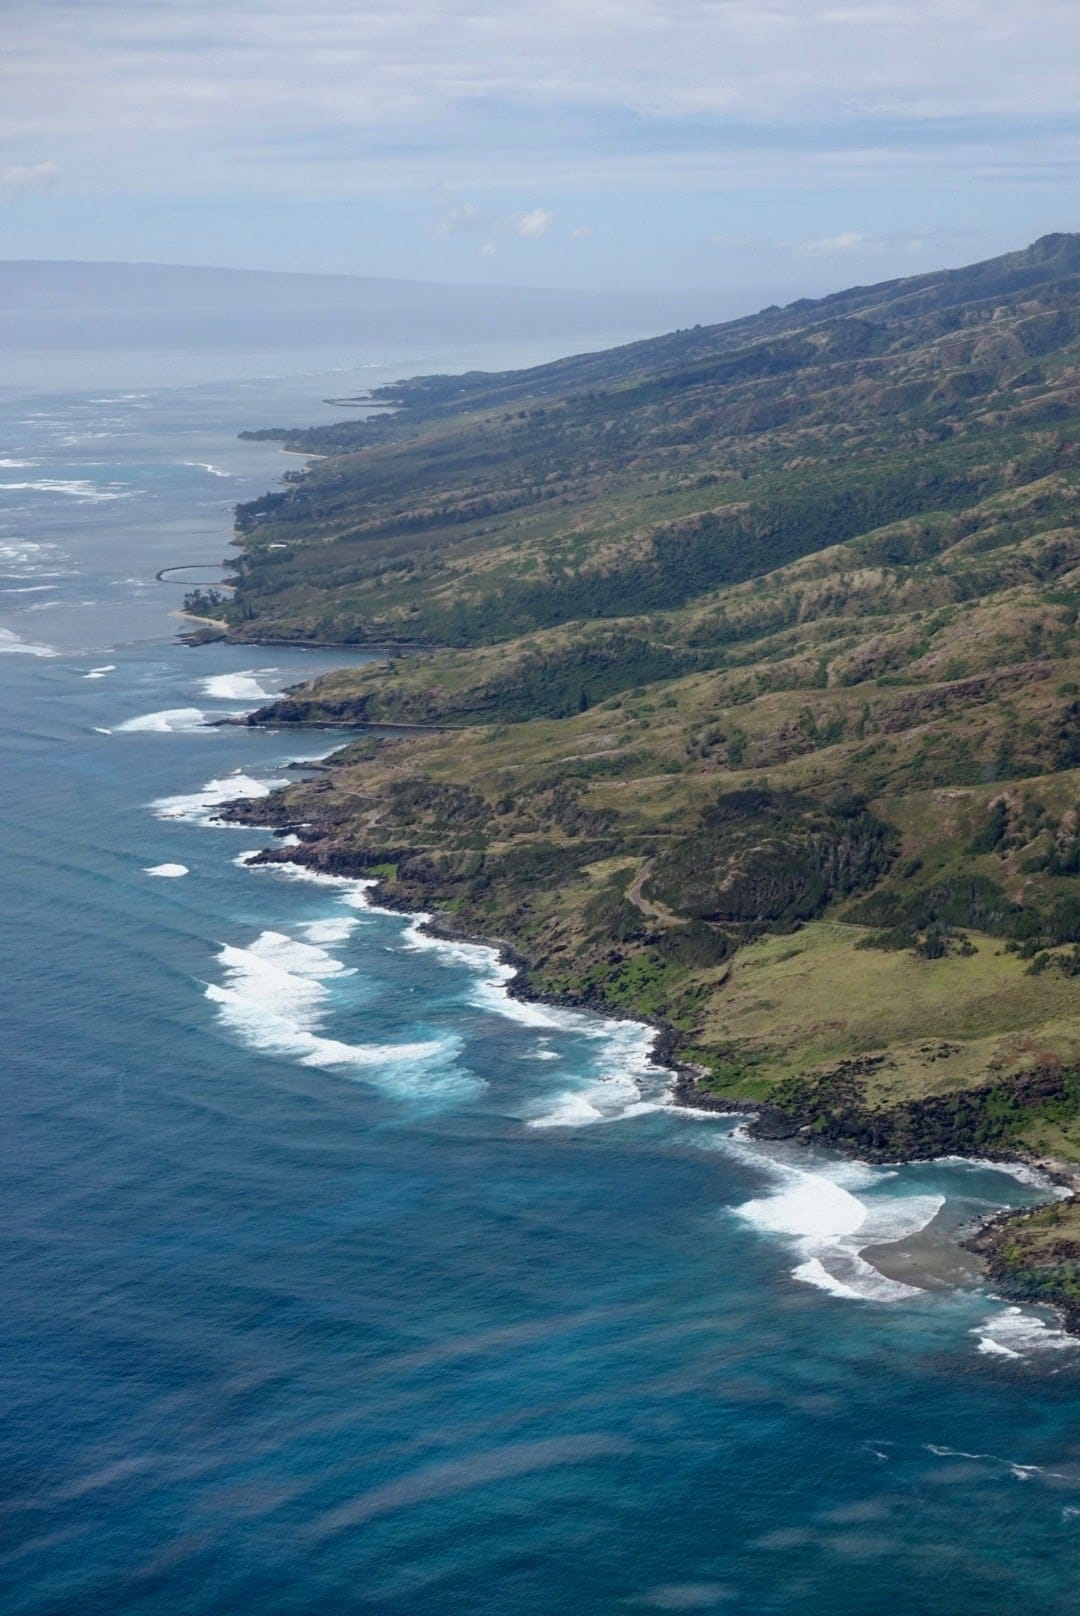 When visiting Maui, you must join Air Maui for their West Maui & Molokai flight! There's no better way to view an island than from above! Read more at www.thefivefoottraveler.com